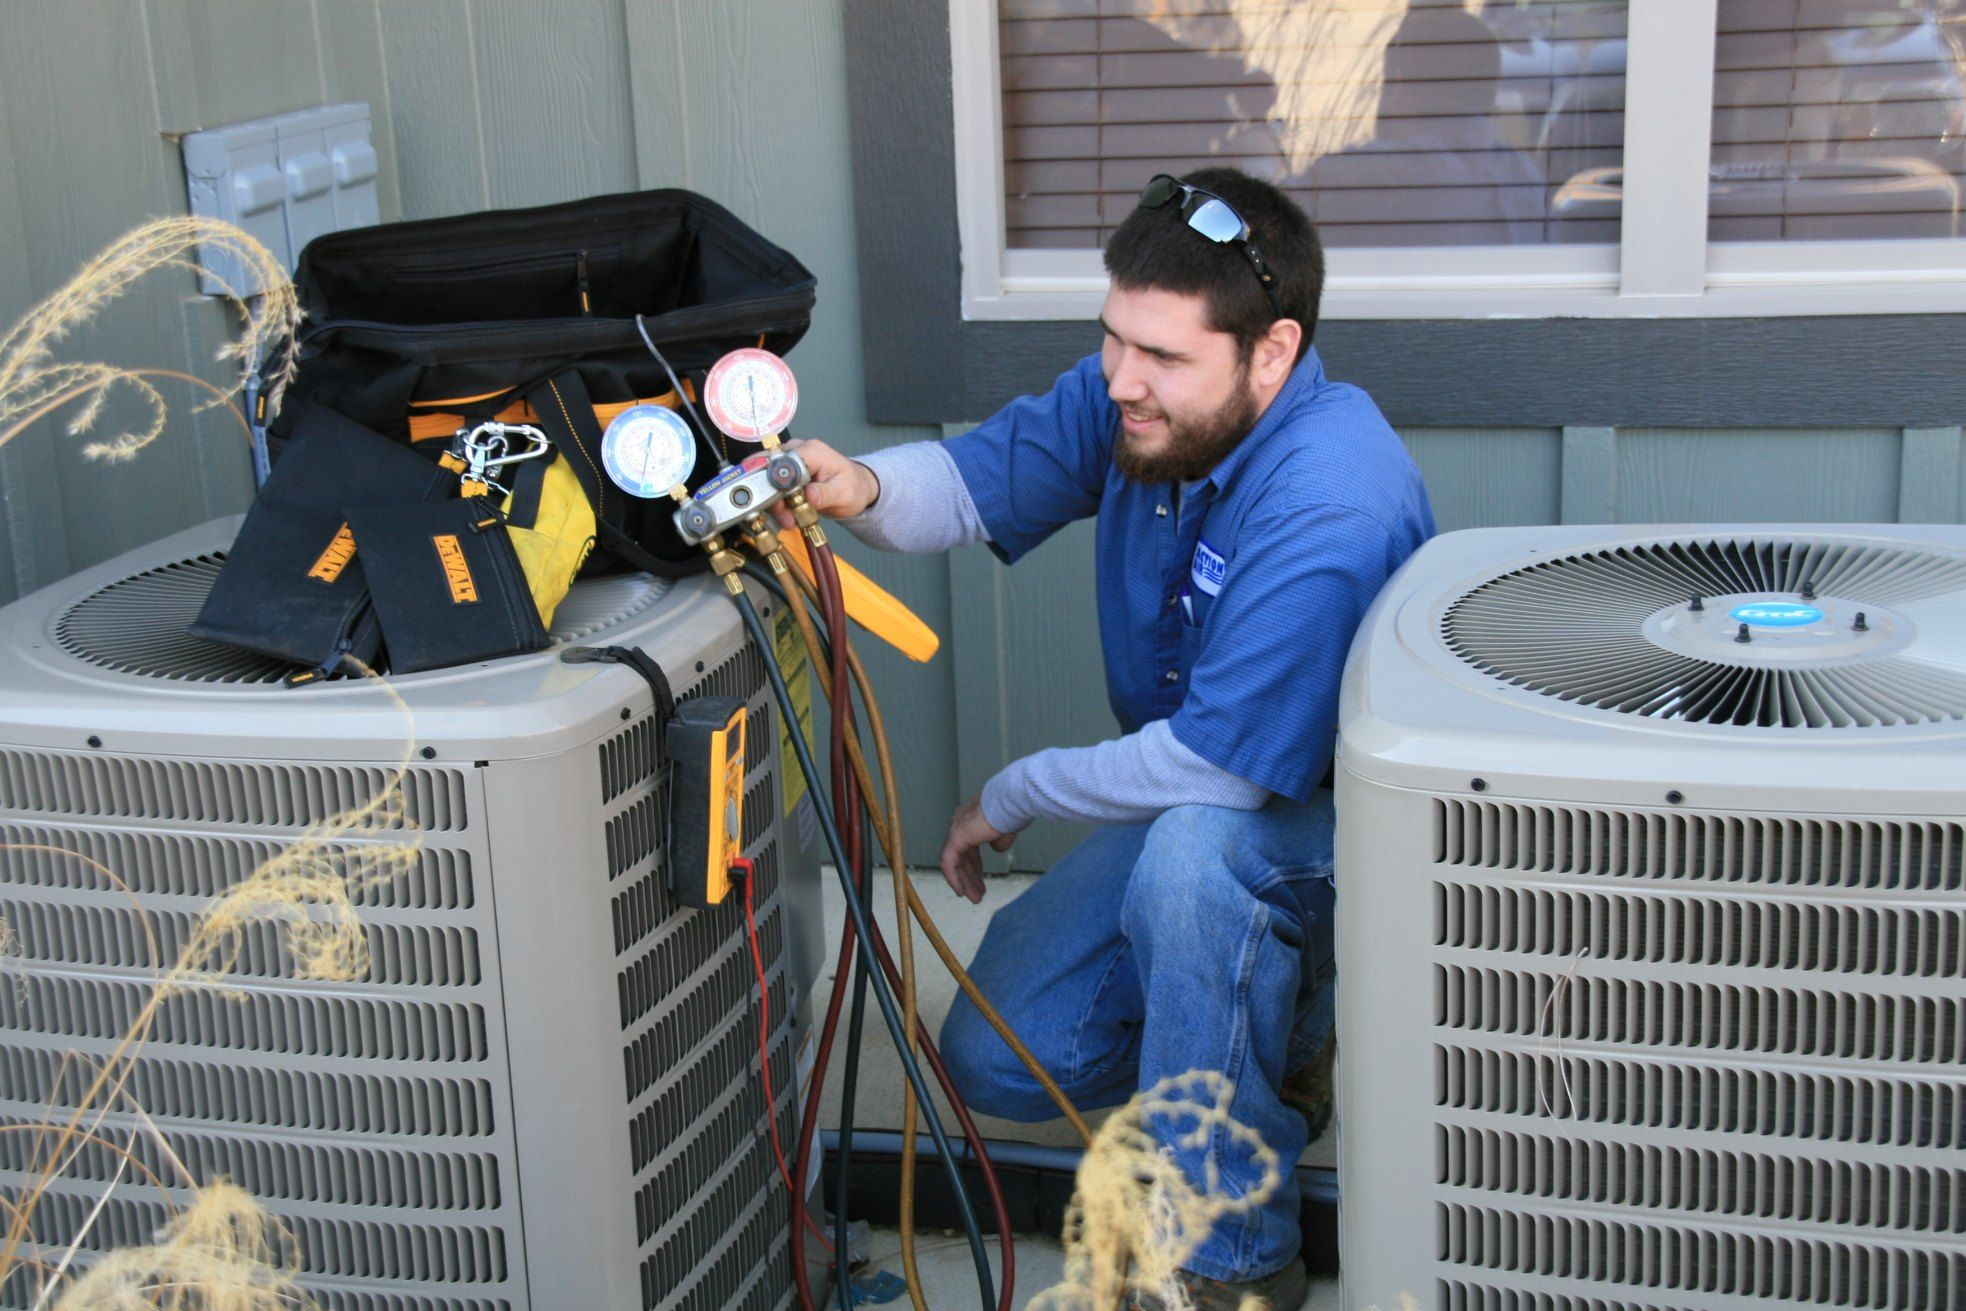 Pin By Zampino Adams On Your Ideas Air Conditioner Maintenance